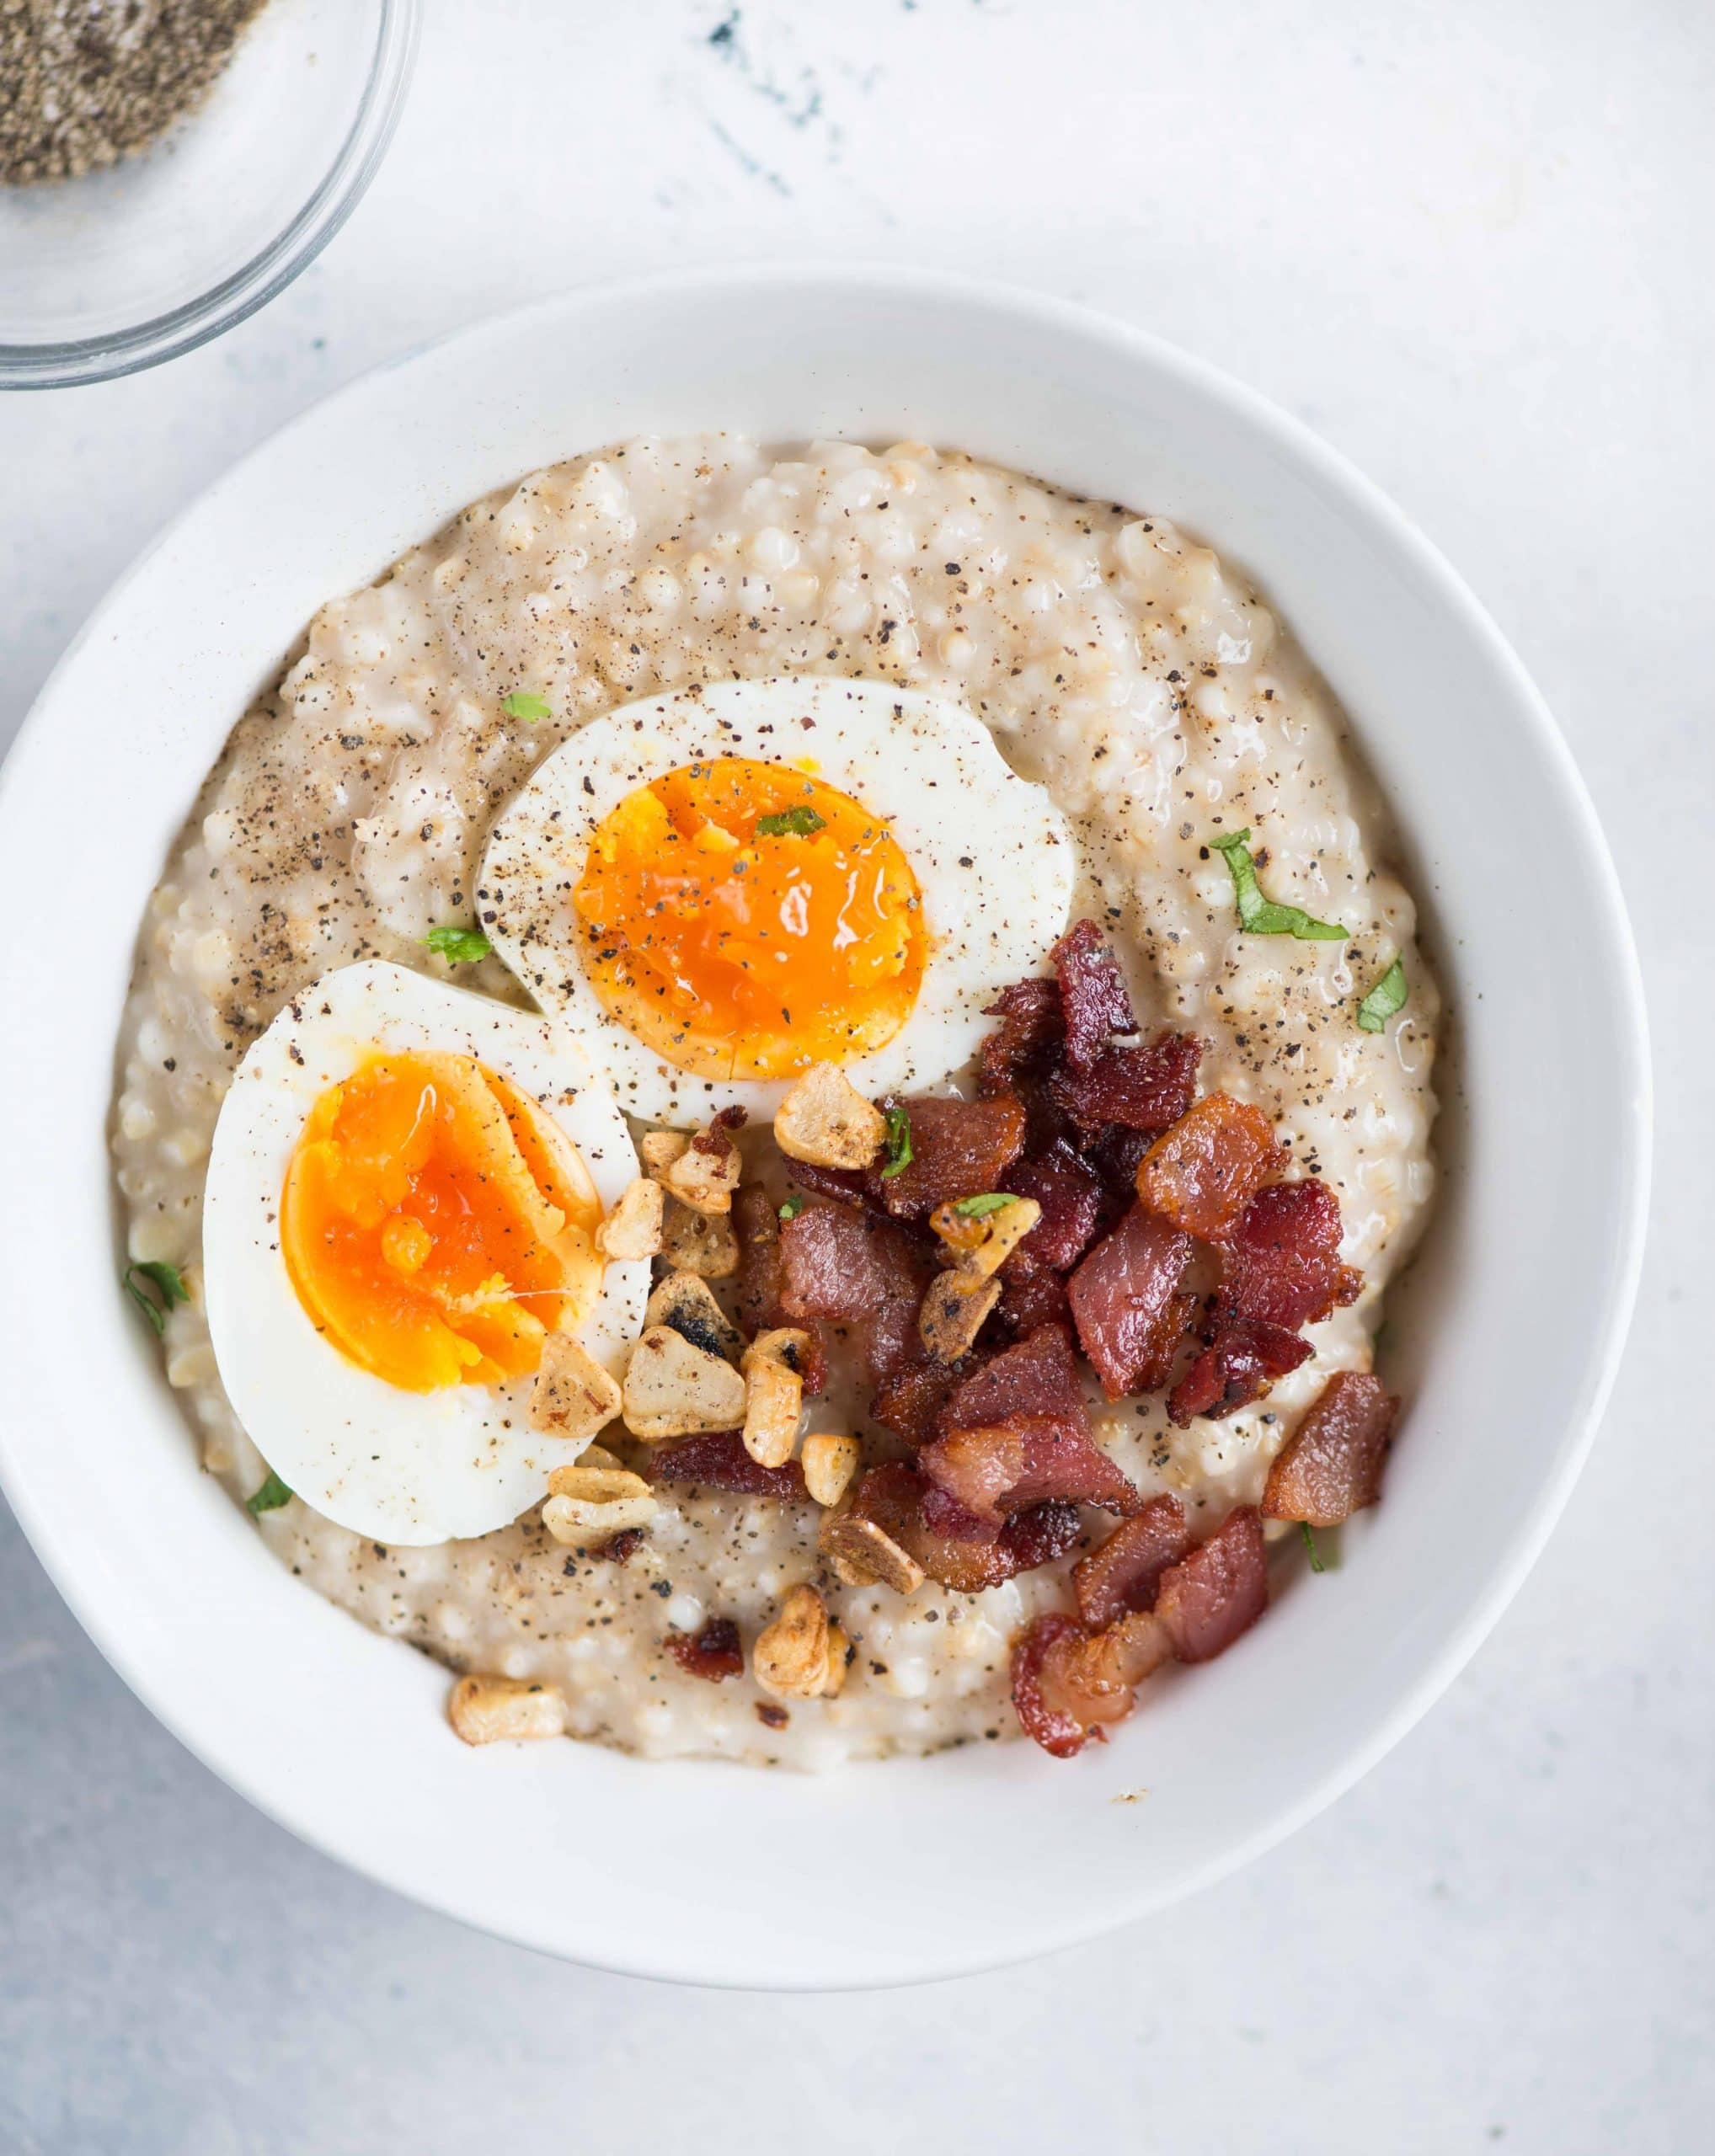 The ultimate guide to cooking Instant Pot Oatmeal with different topping suggestions and tips. Healthy and nutritious breakfast will be ready in less than 15 mins. There are  Instructions for both Steel cut and rolled oats included in the recipe.